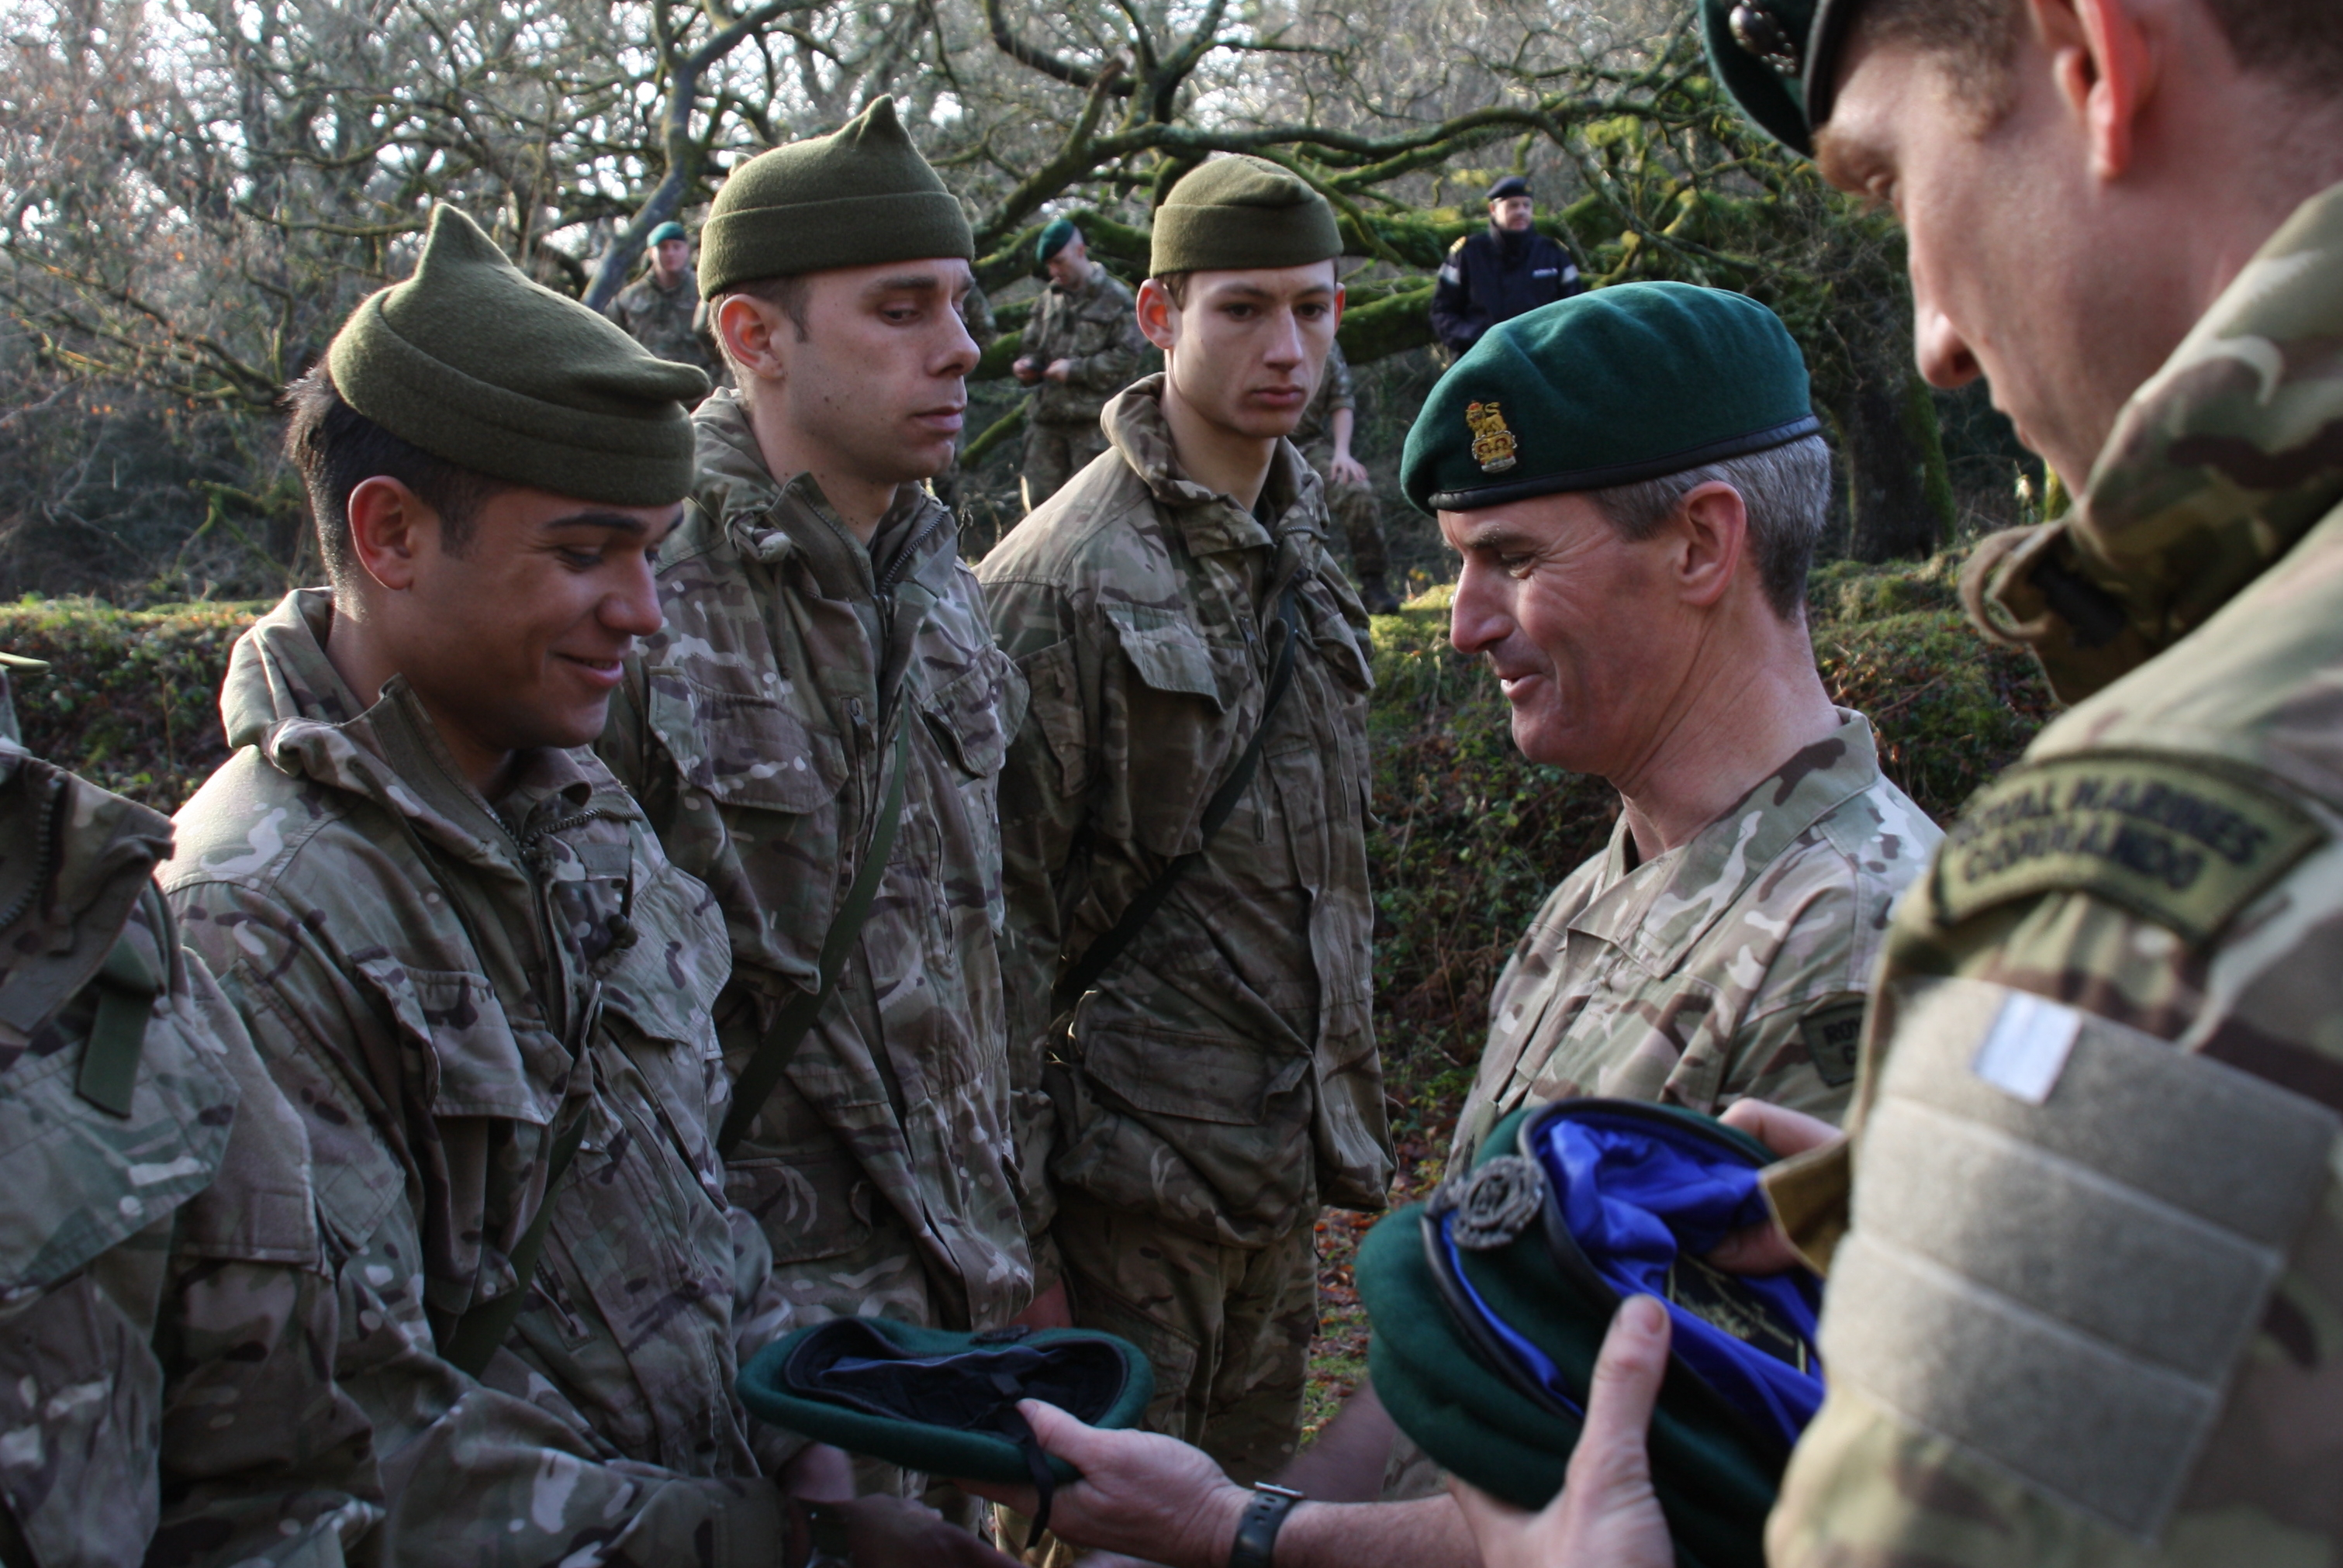 86ee789abe0e2 Receiving the green beret from the Brigade Commander.